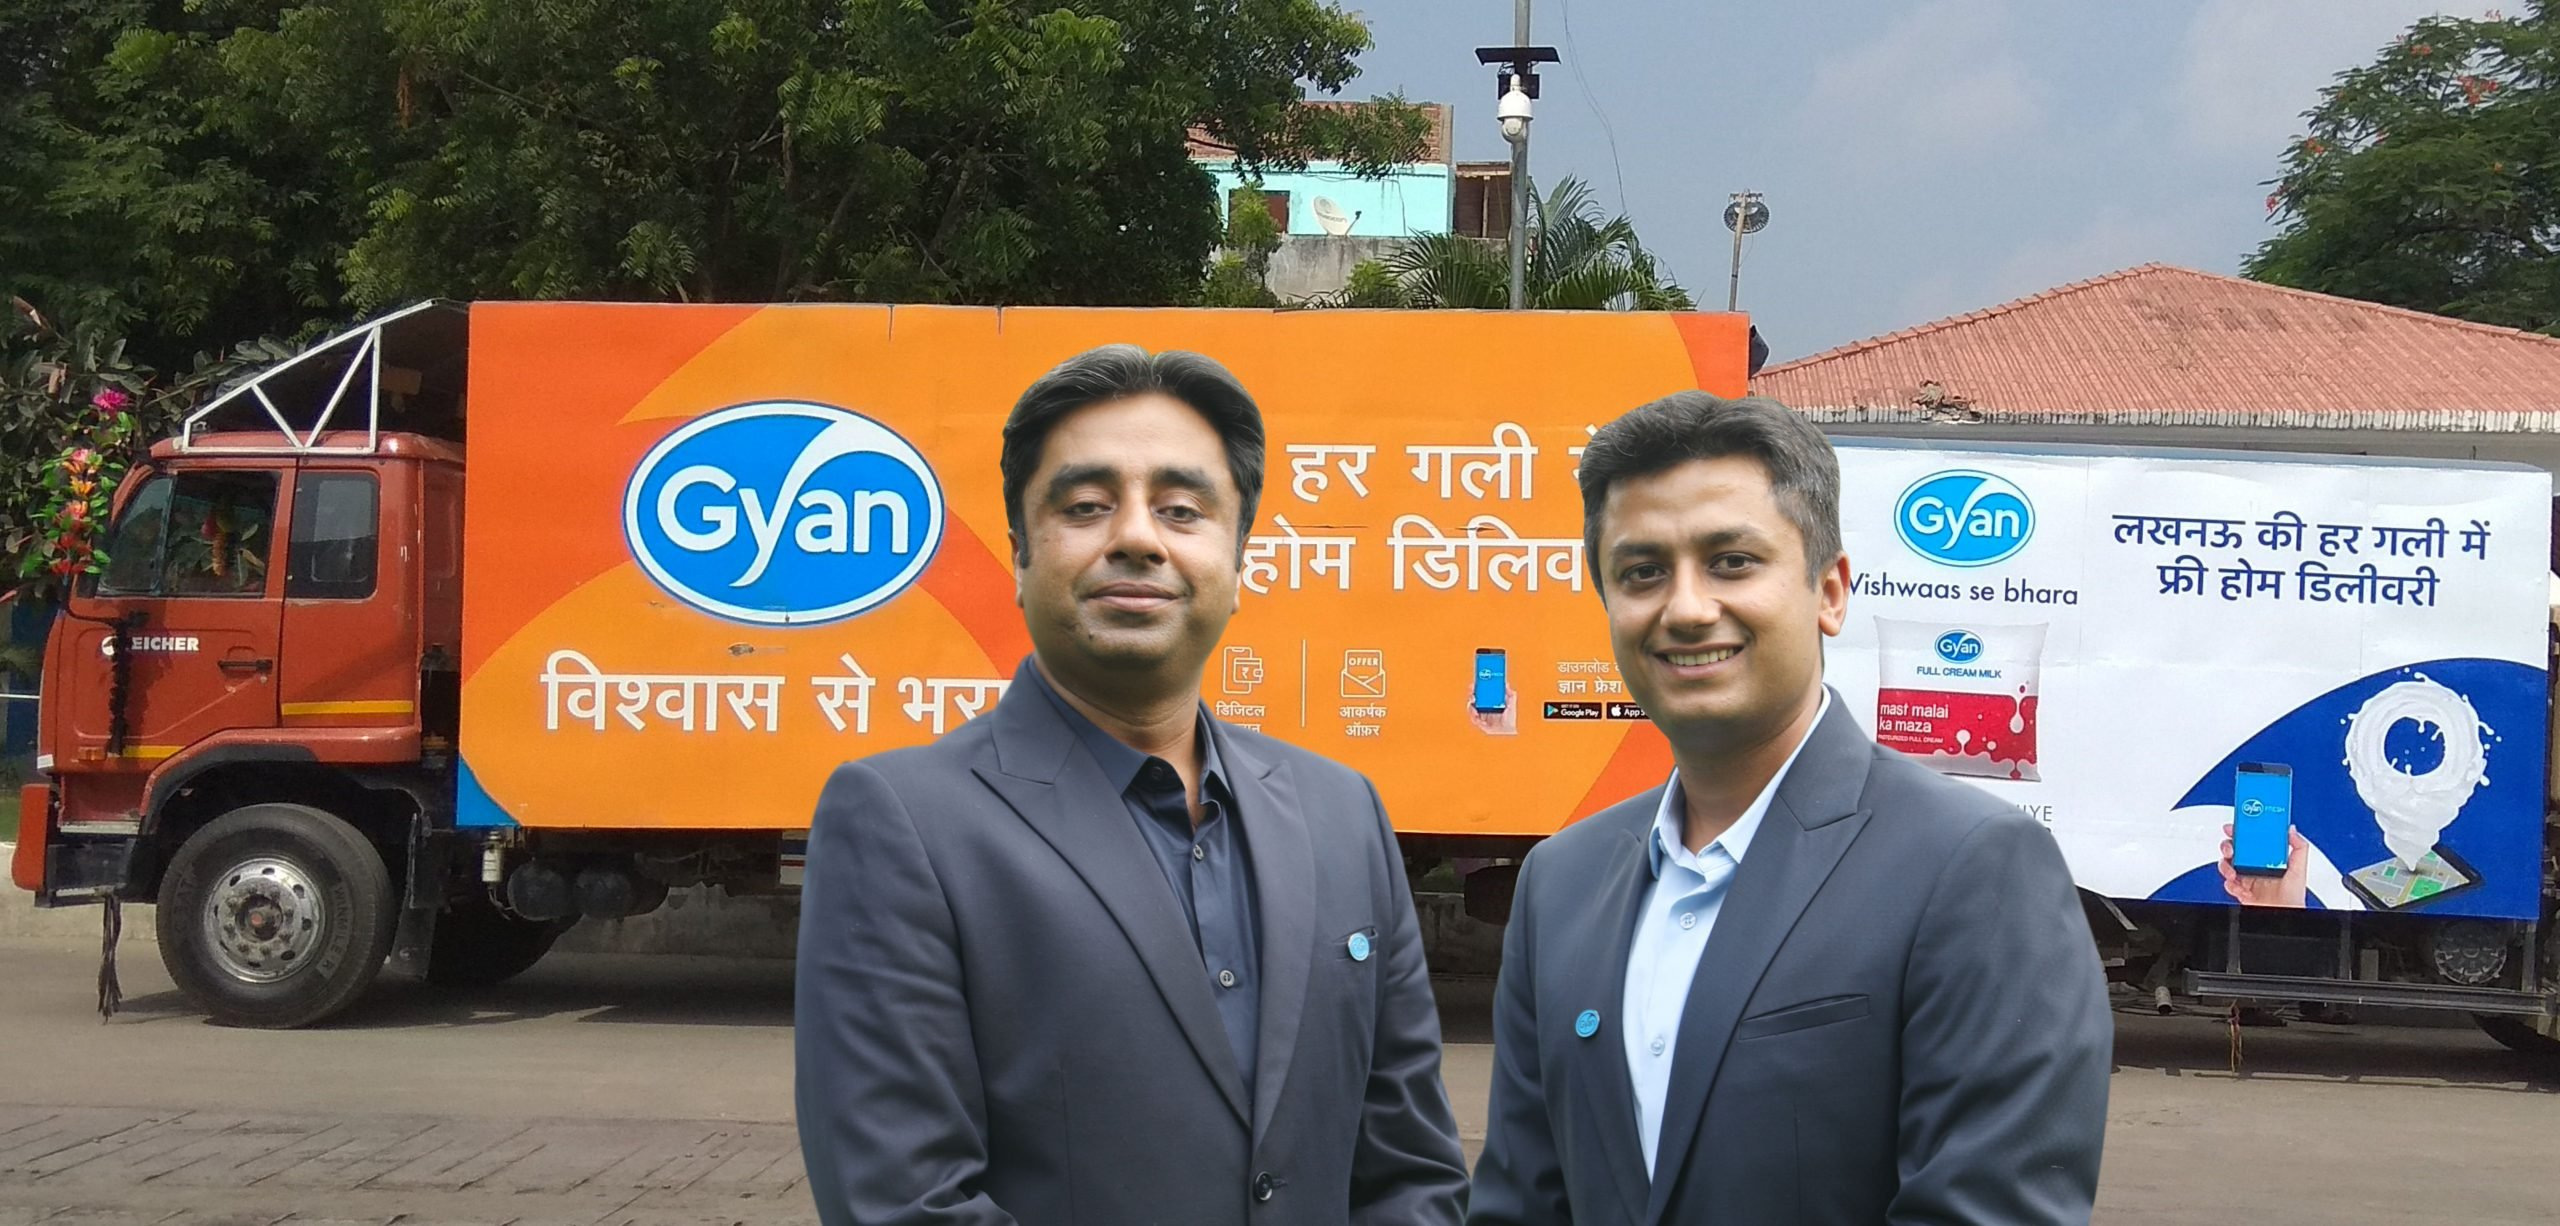 Gyan Dairy is disrupting dairy industry with its new-age technology and consumer centric approach